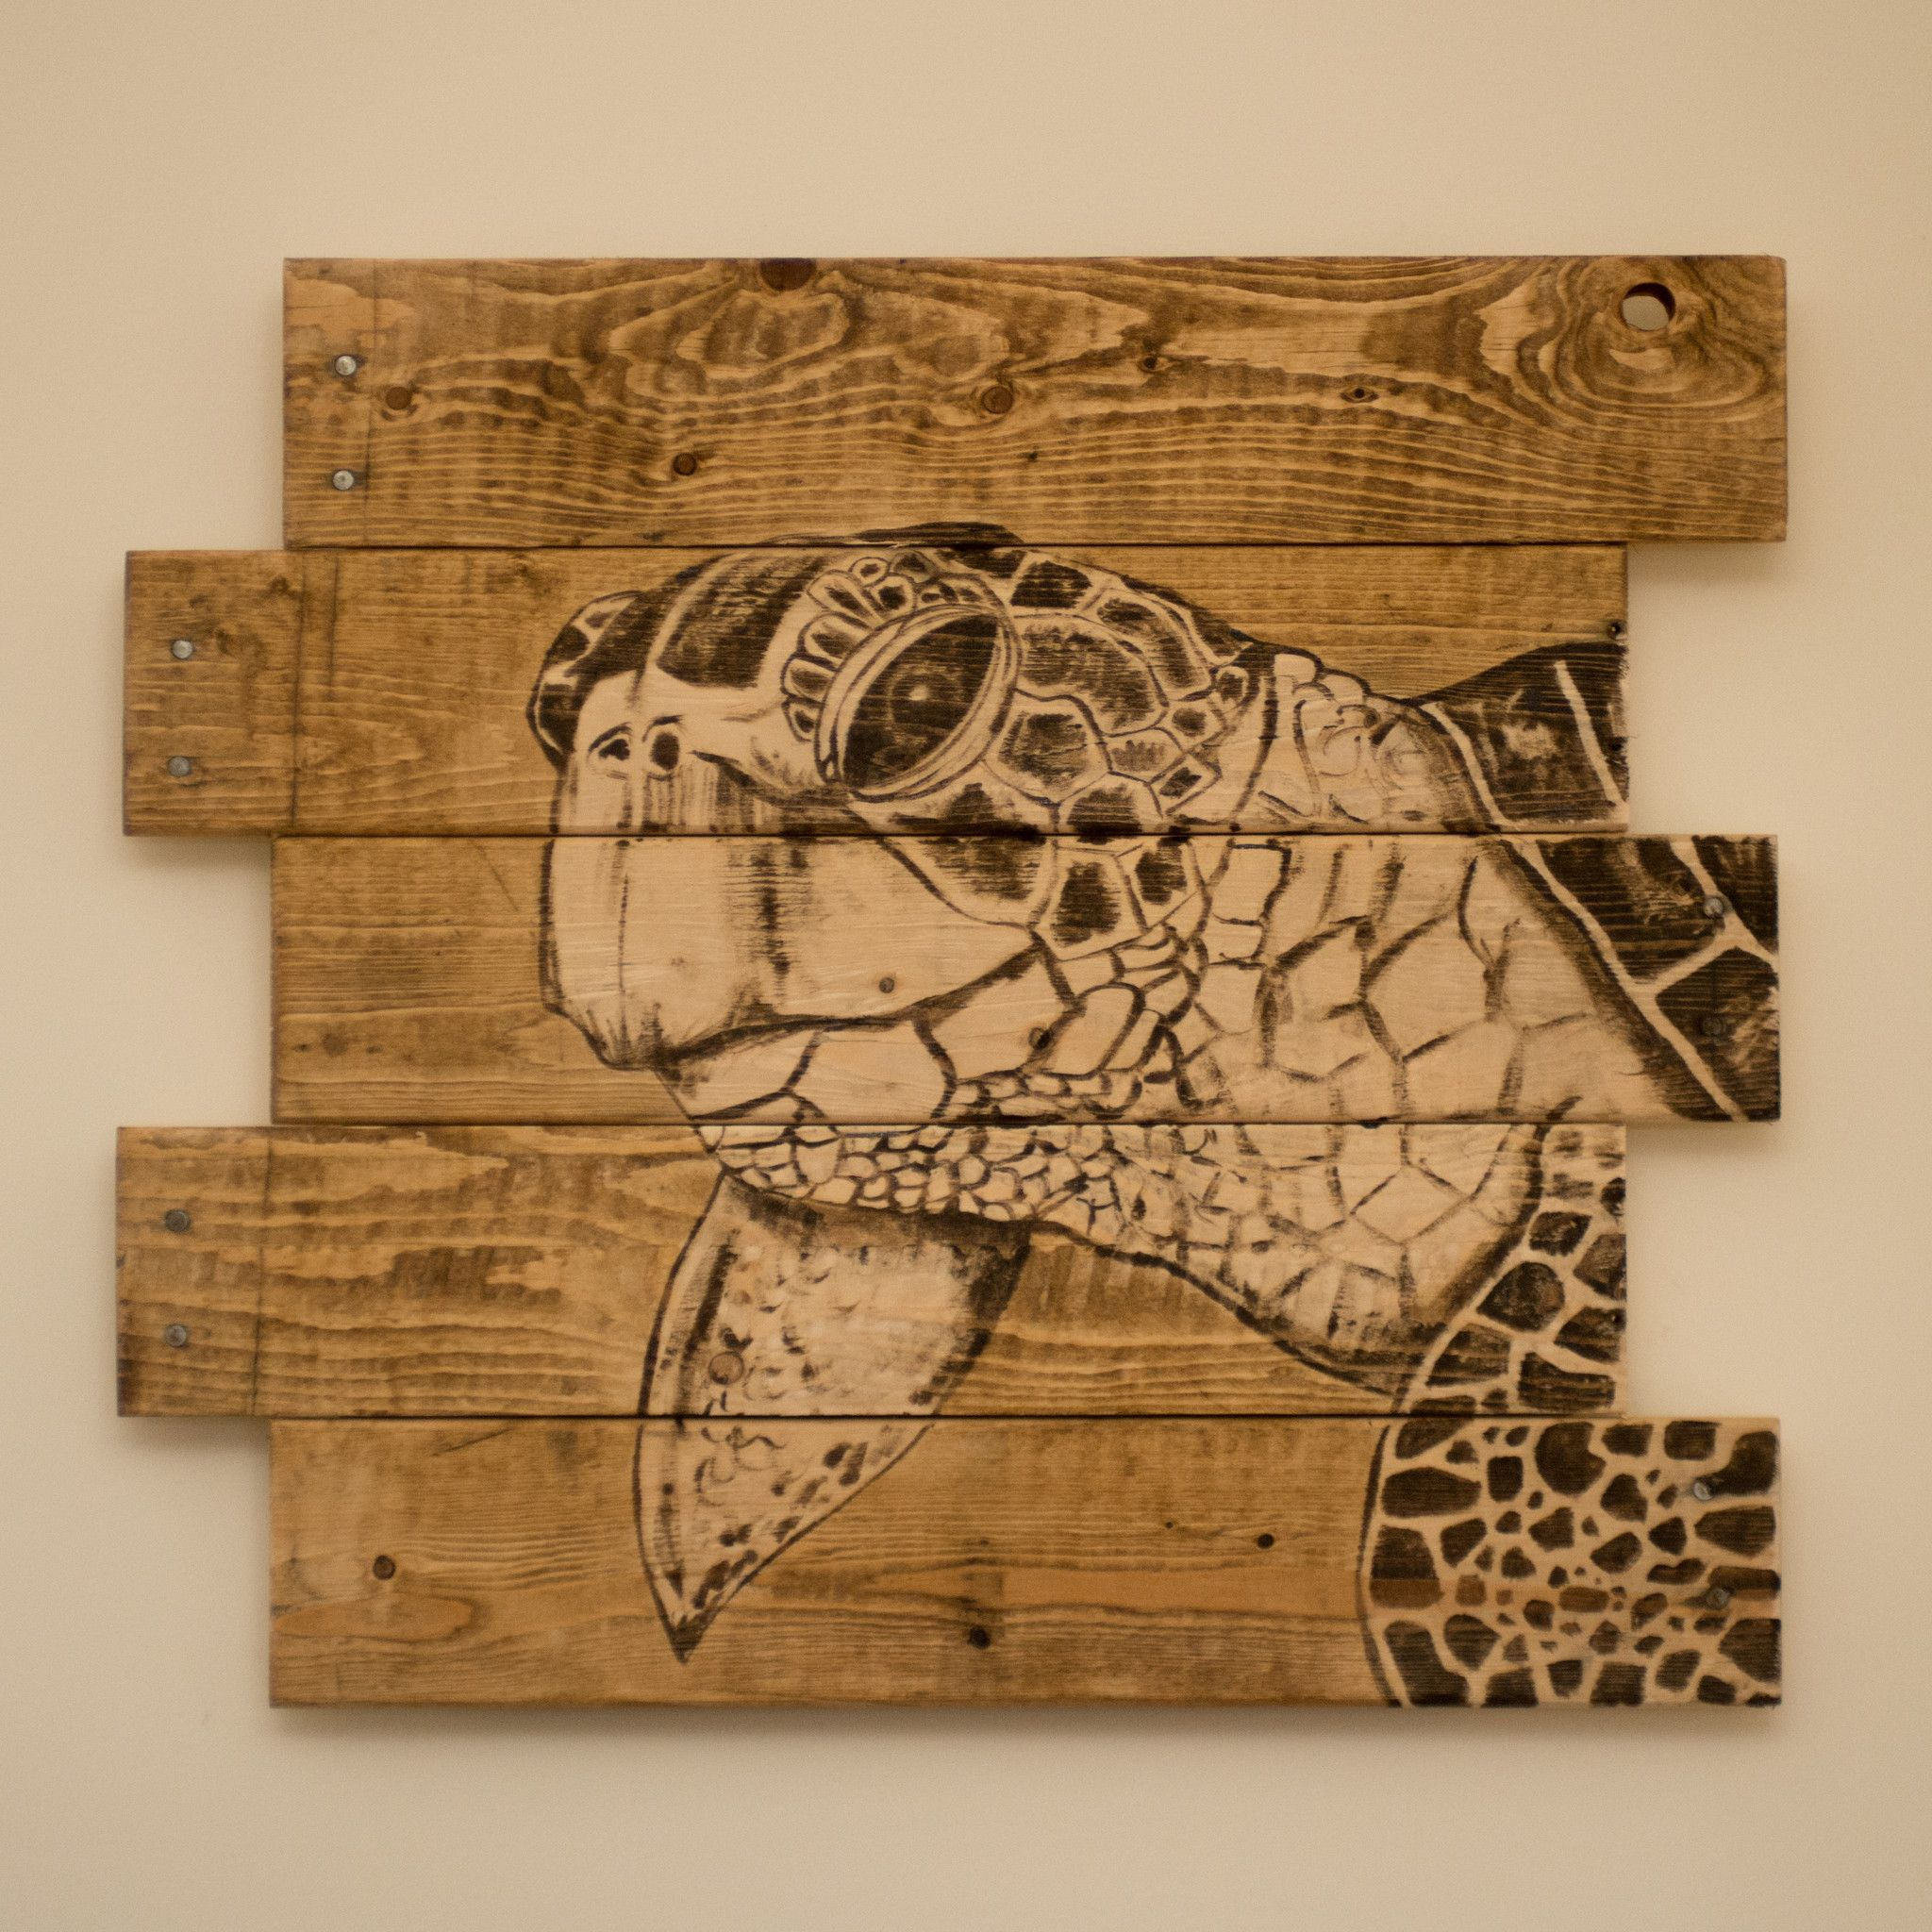 handmade sea turtle wood stain art on pallet wood canvas in 2018